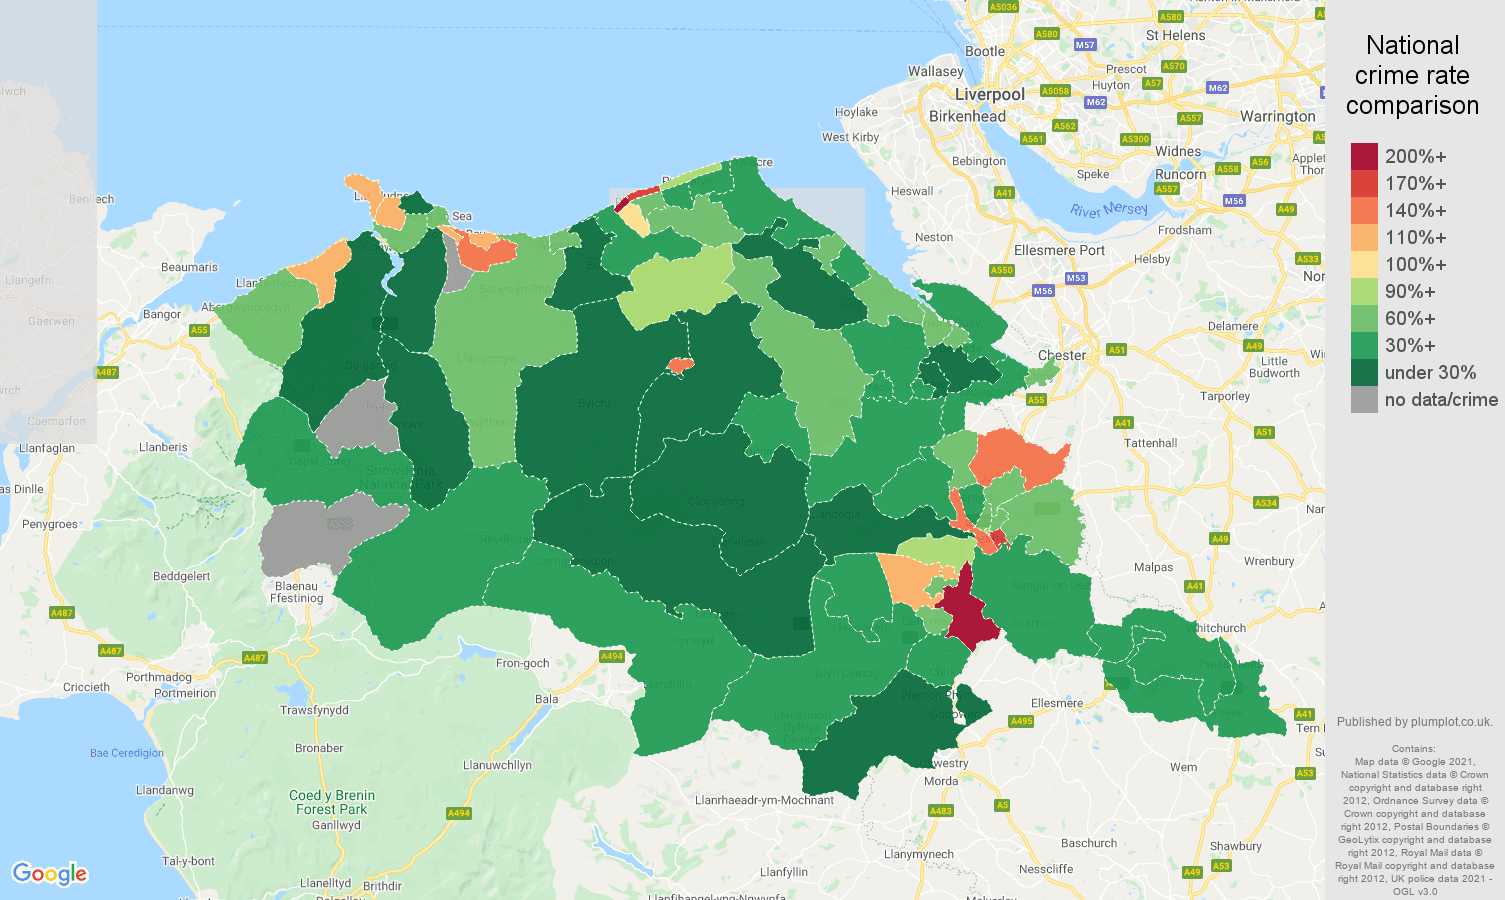 Clwyd drugs crime rate comparison map